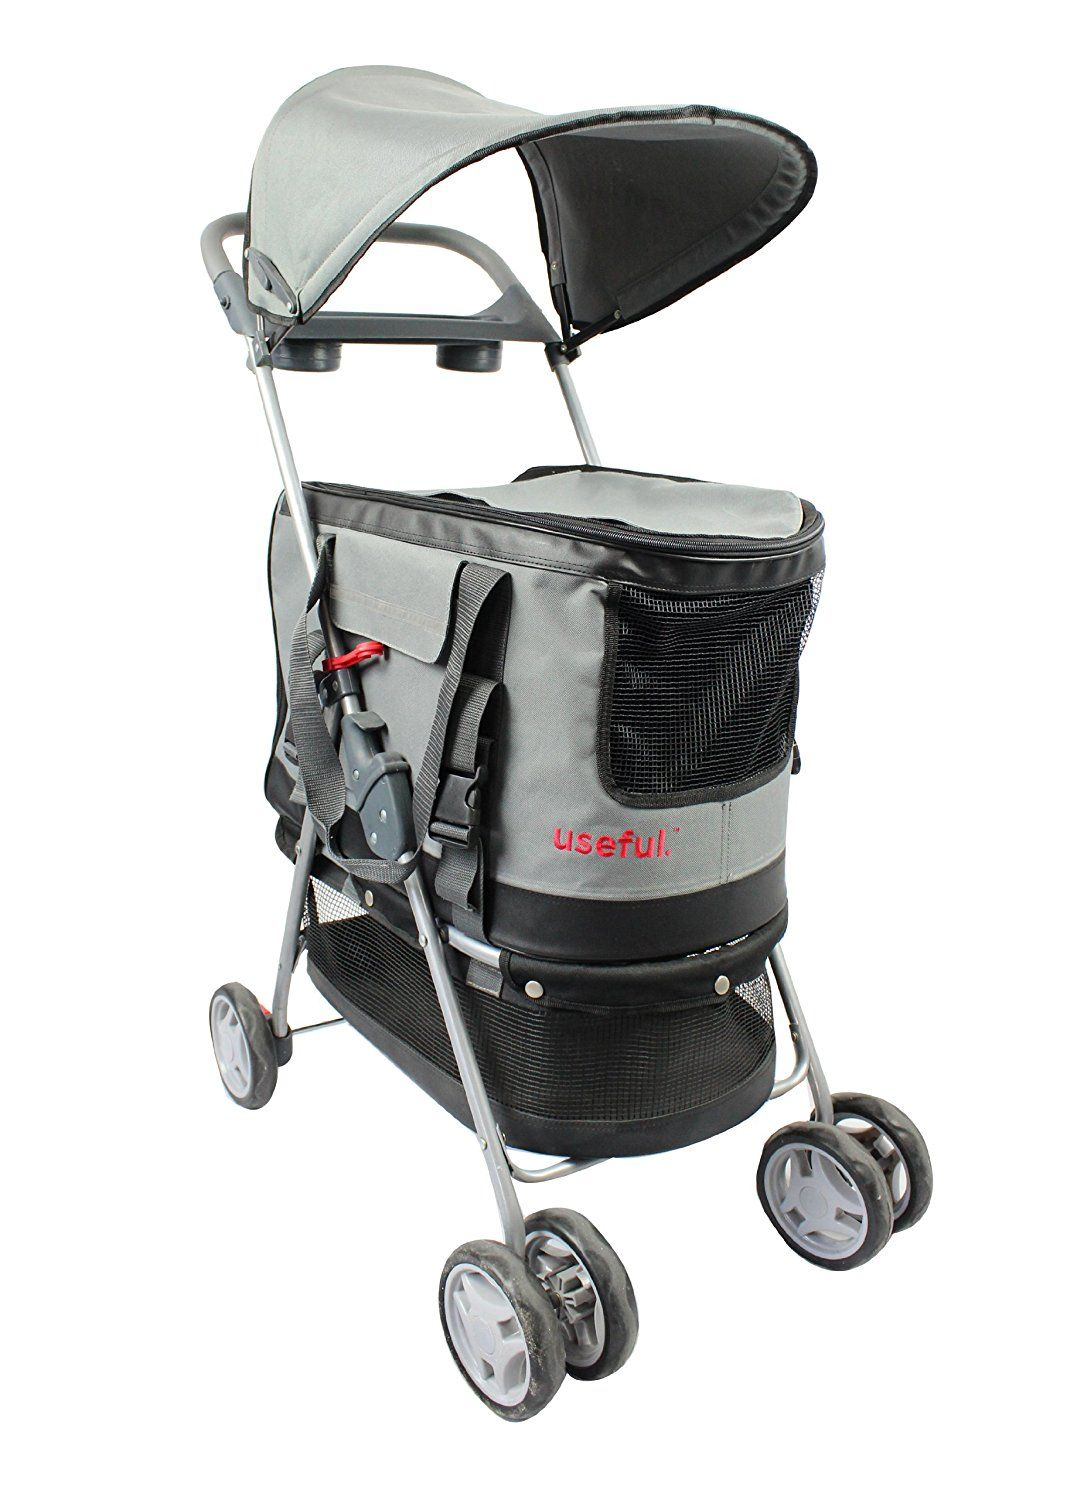 Useful. UHA125 3 in 1 Pet Stroller ,Carrier and Car Seat